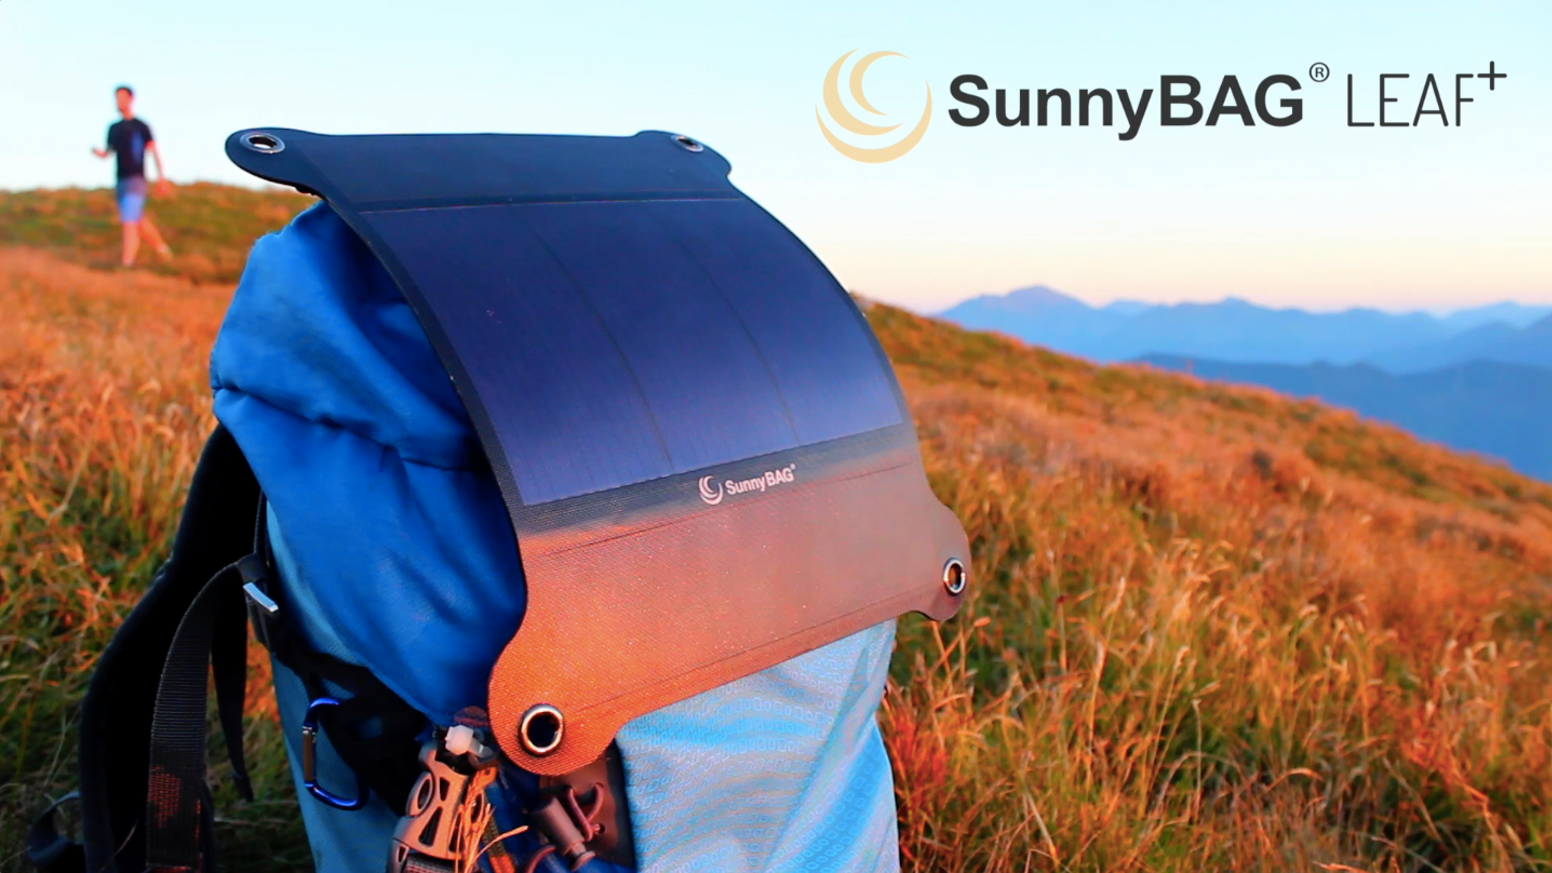 6 Watt flexible solar system with less than 200 grams + 6000mAh power bank. Support us now and don't think about empty batteries again.